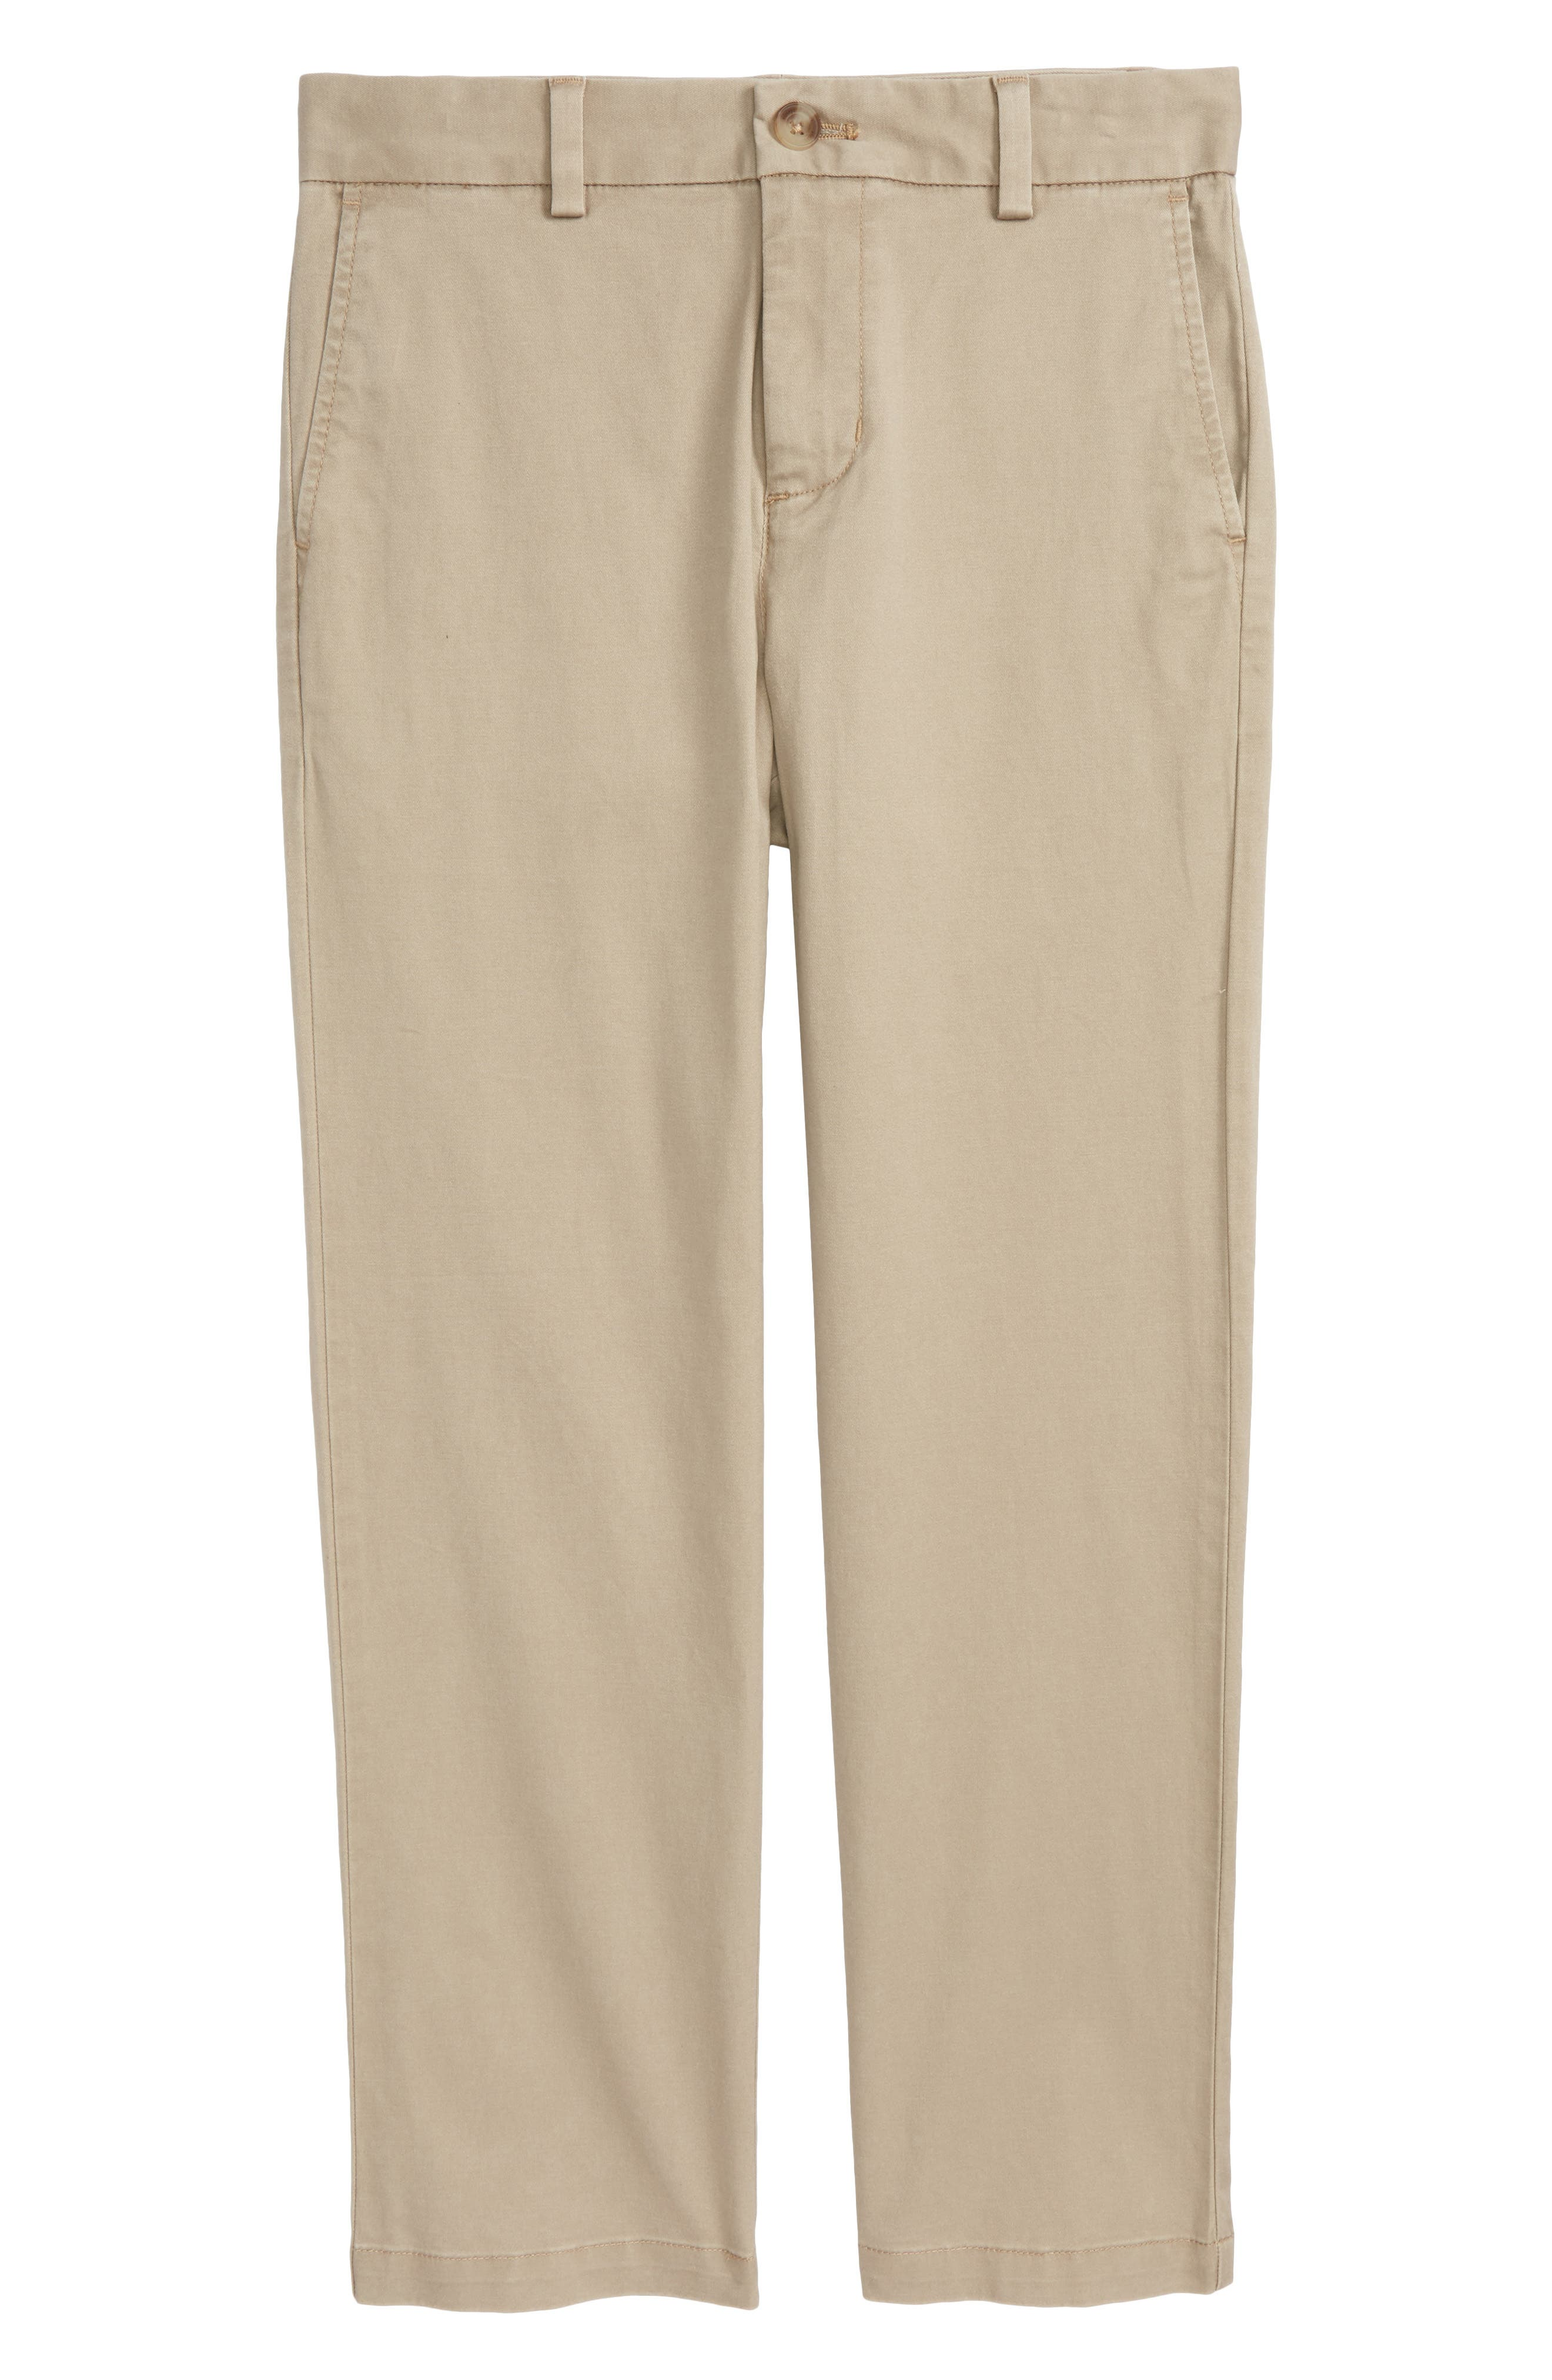 Breaker Pants,                             Main thumbnail 1, color,                             KHAKI